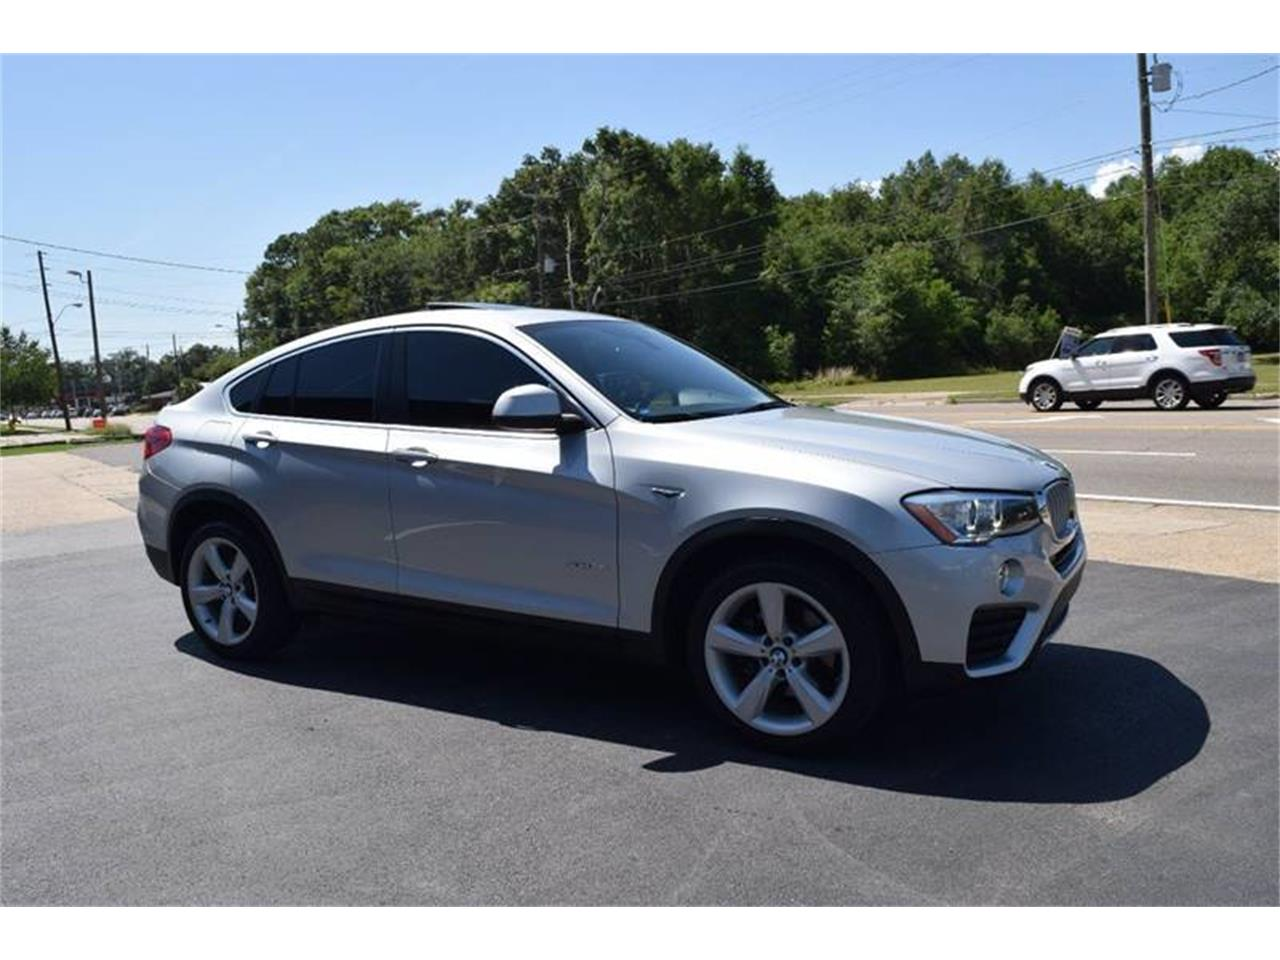 Large Picture of '16 BMW X4 located in Biloxi Mississippi Offered by Gulf Coast Exotic Auto - QKEO